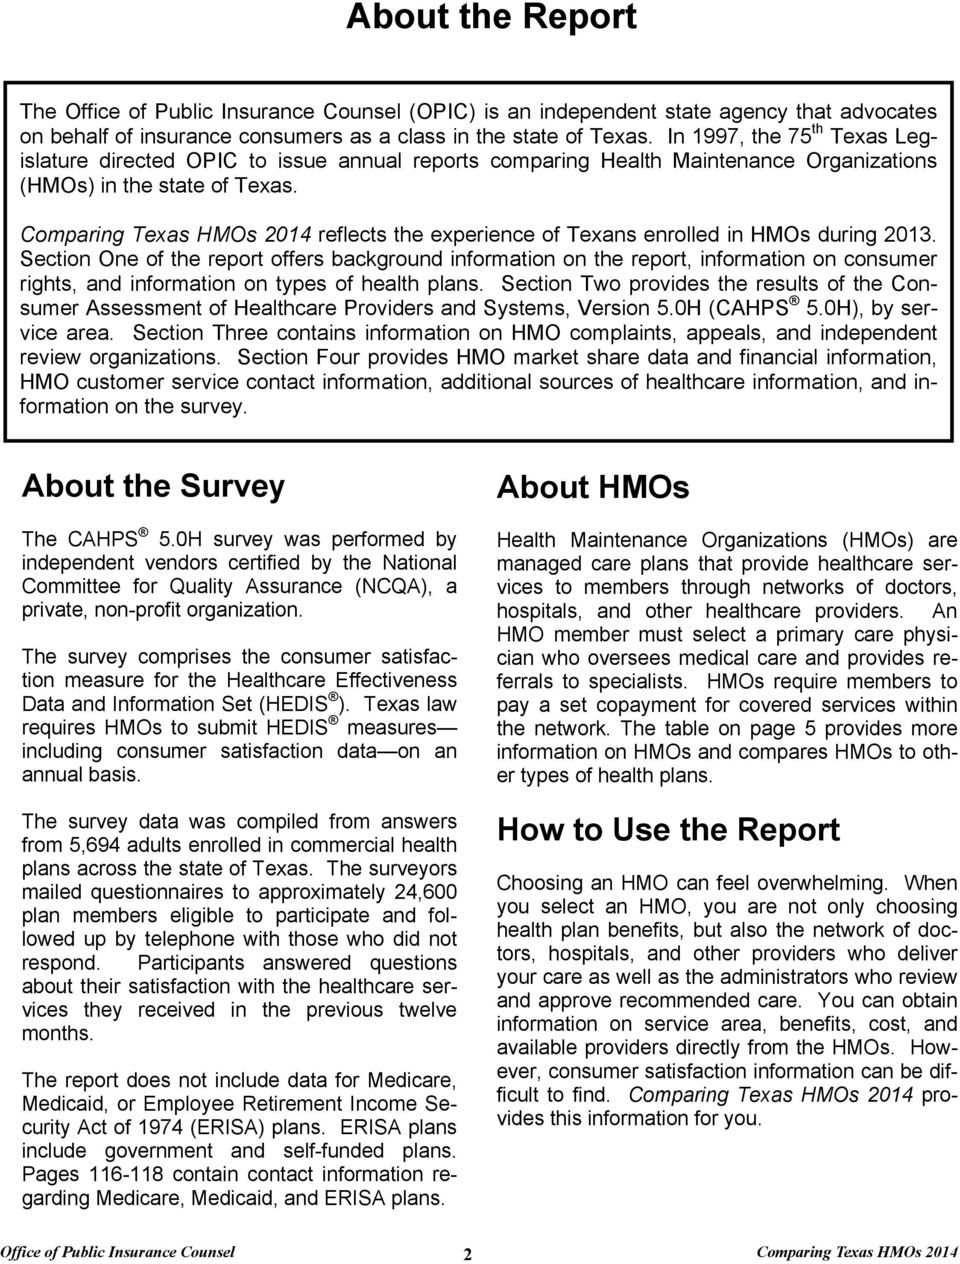 Comparing Texas HMOs 2014 reflects the experience of Texans enrolled in HMOs during 2013.